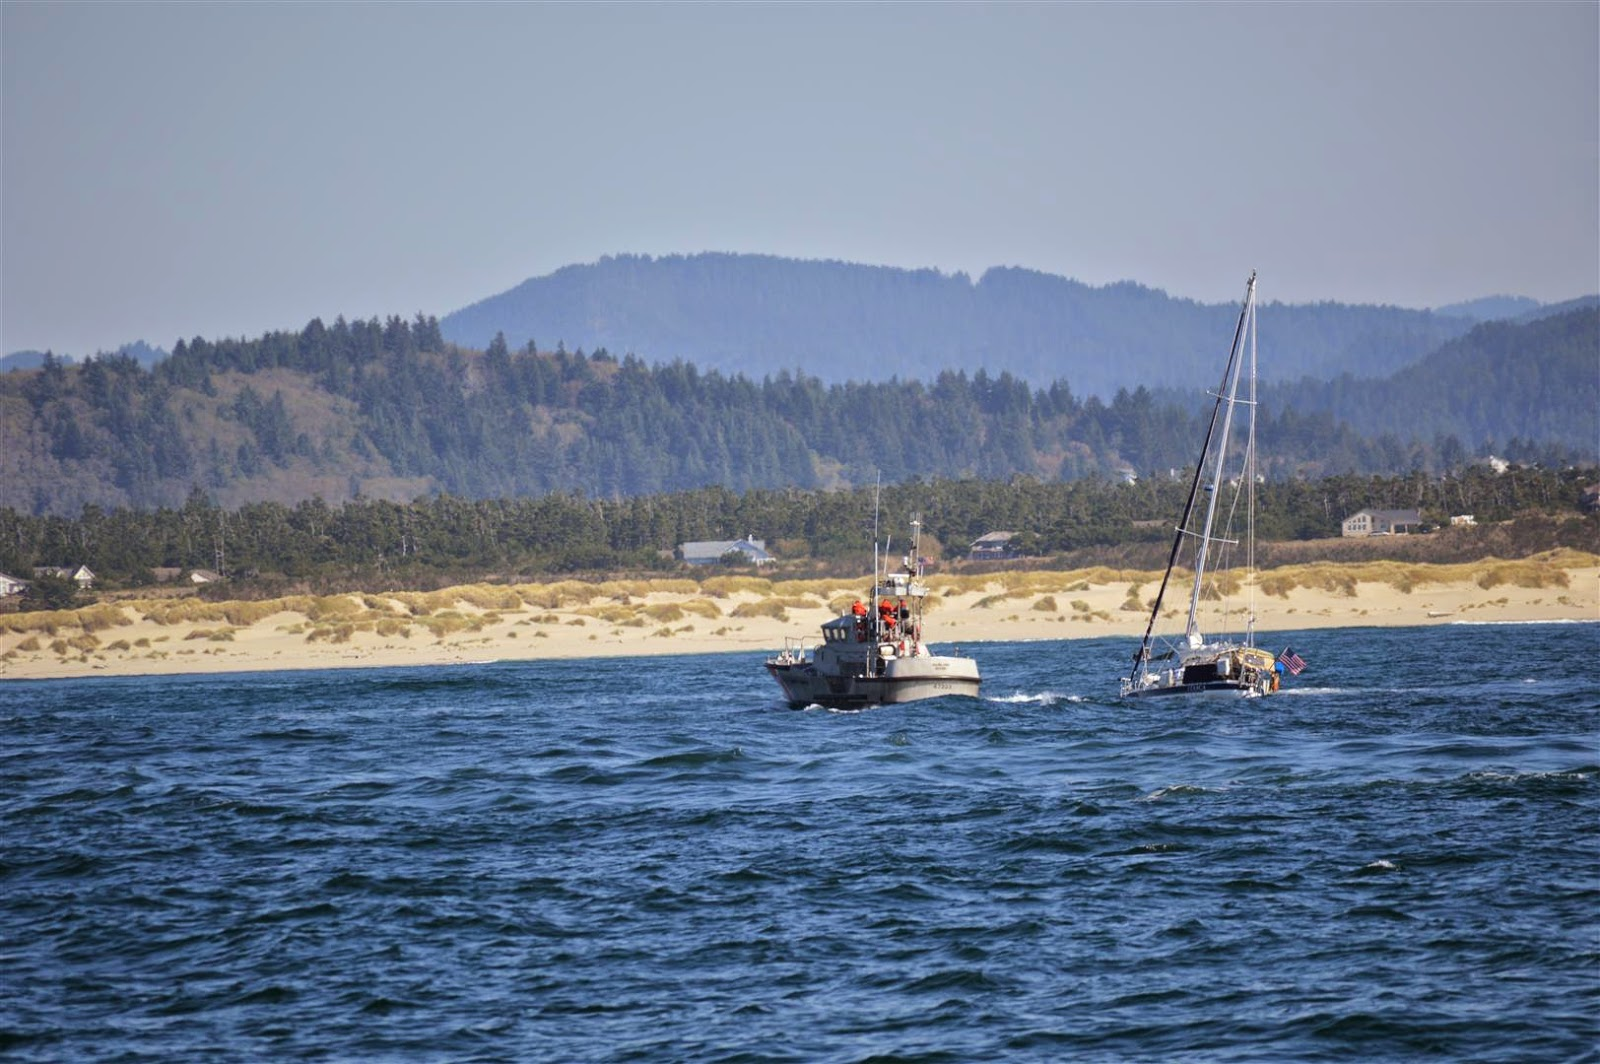 The Coast Guardes Out To Escort The Troubled Sailboat We Follow Them  Upriver All The Way To Florence That Makes It Easy!